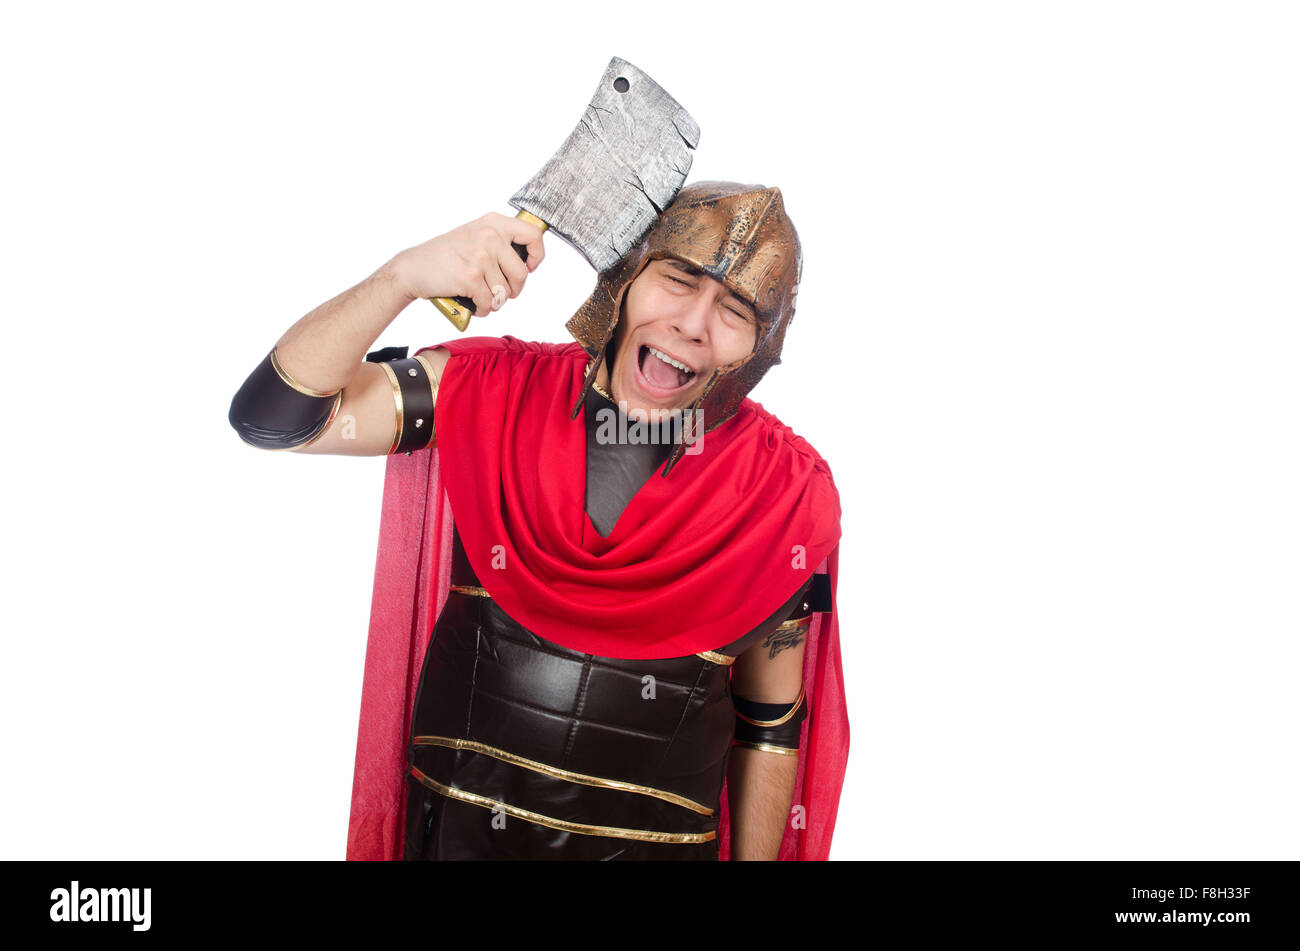 Gladiator with cleaver isolated on white - Stock Image